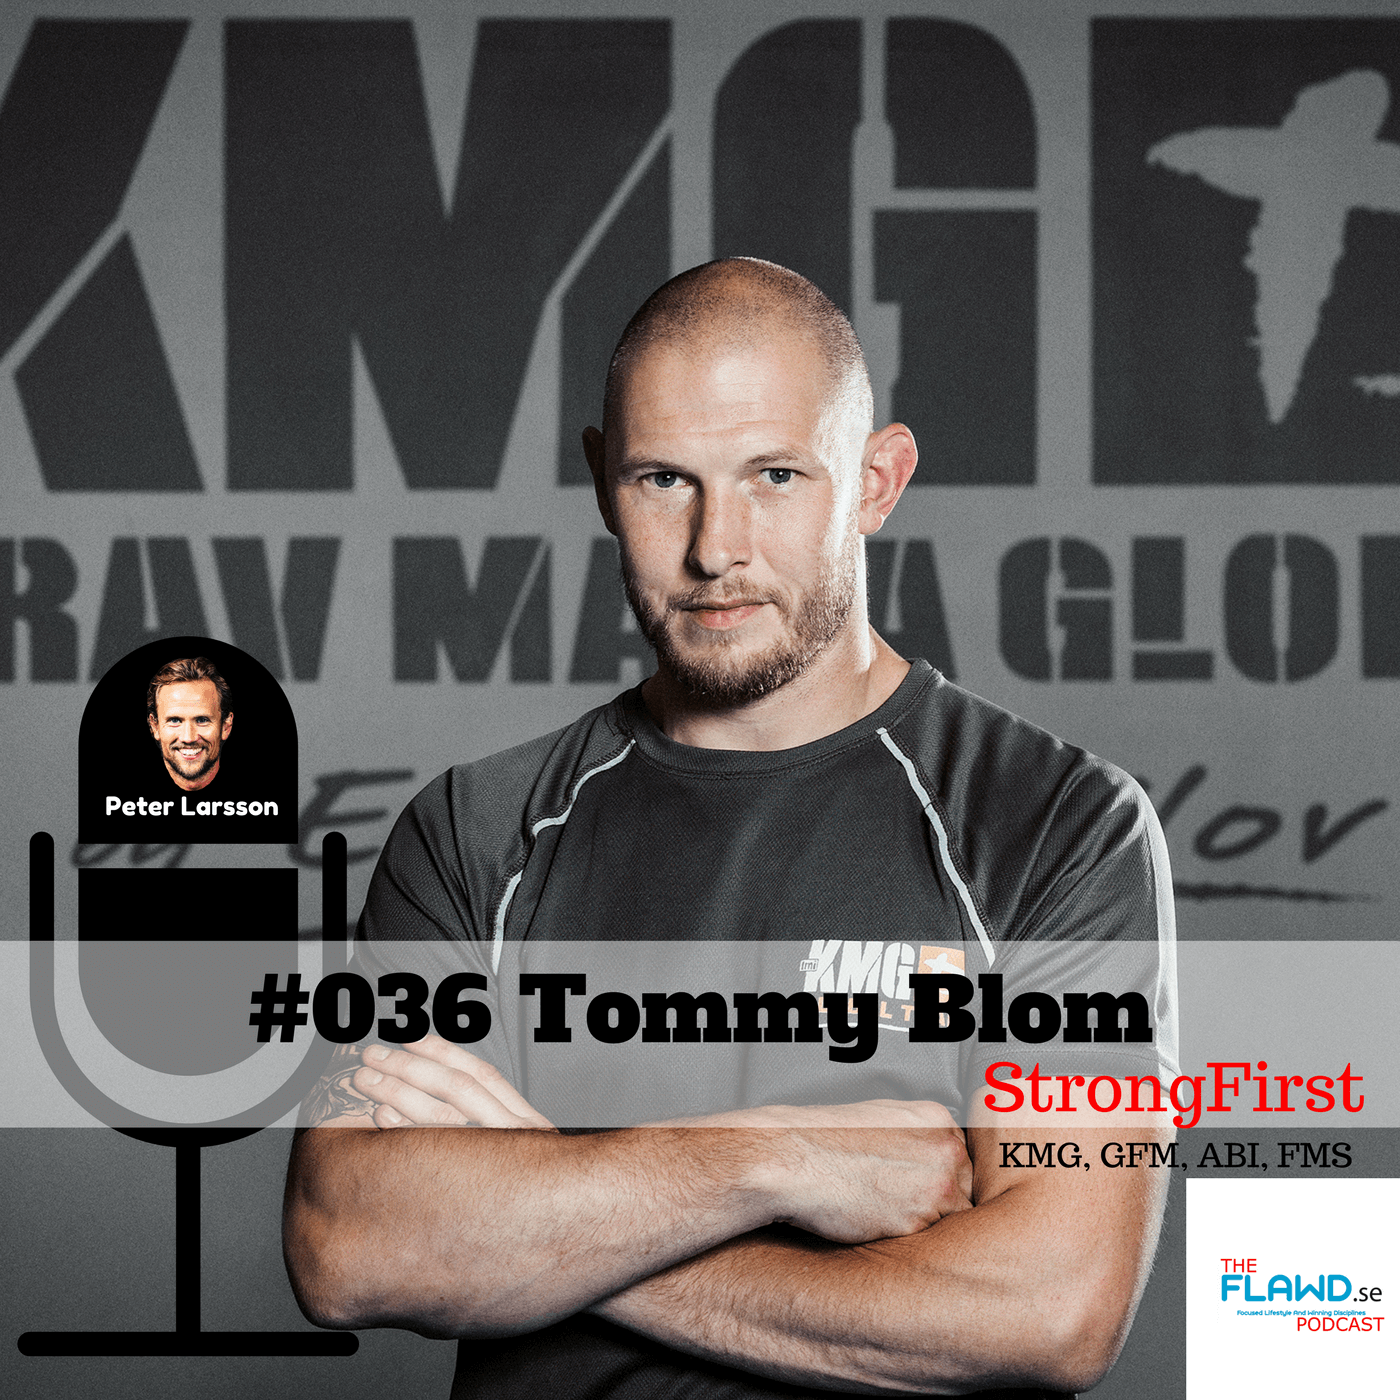 Tommy Blom – StrongFirst – The FLAWD podcast (#036)